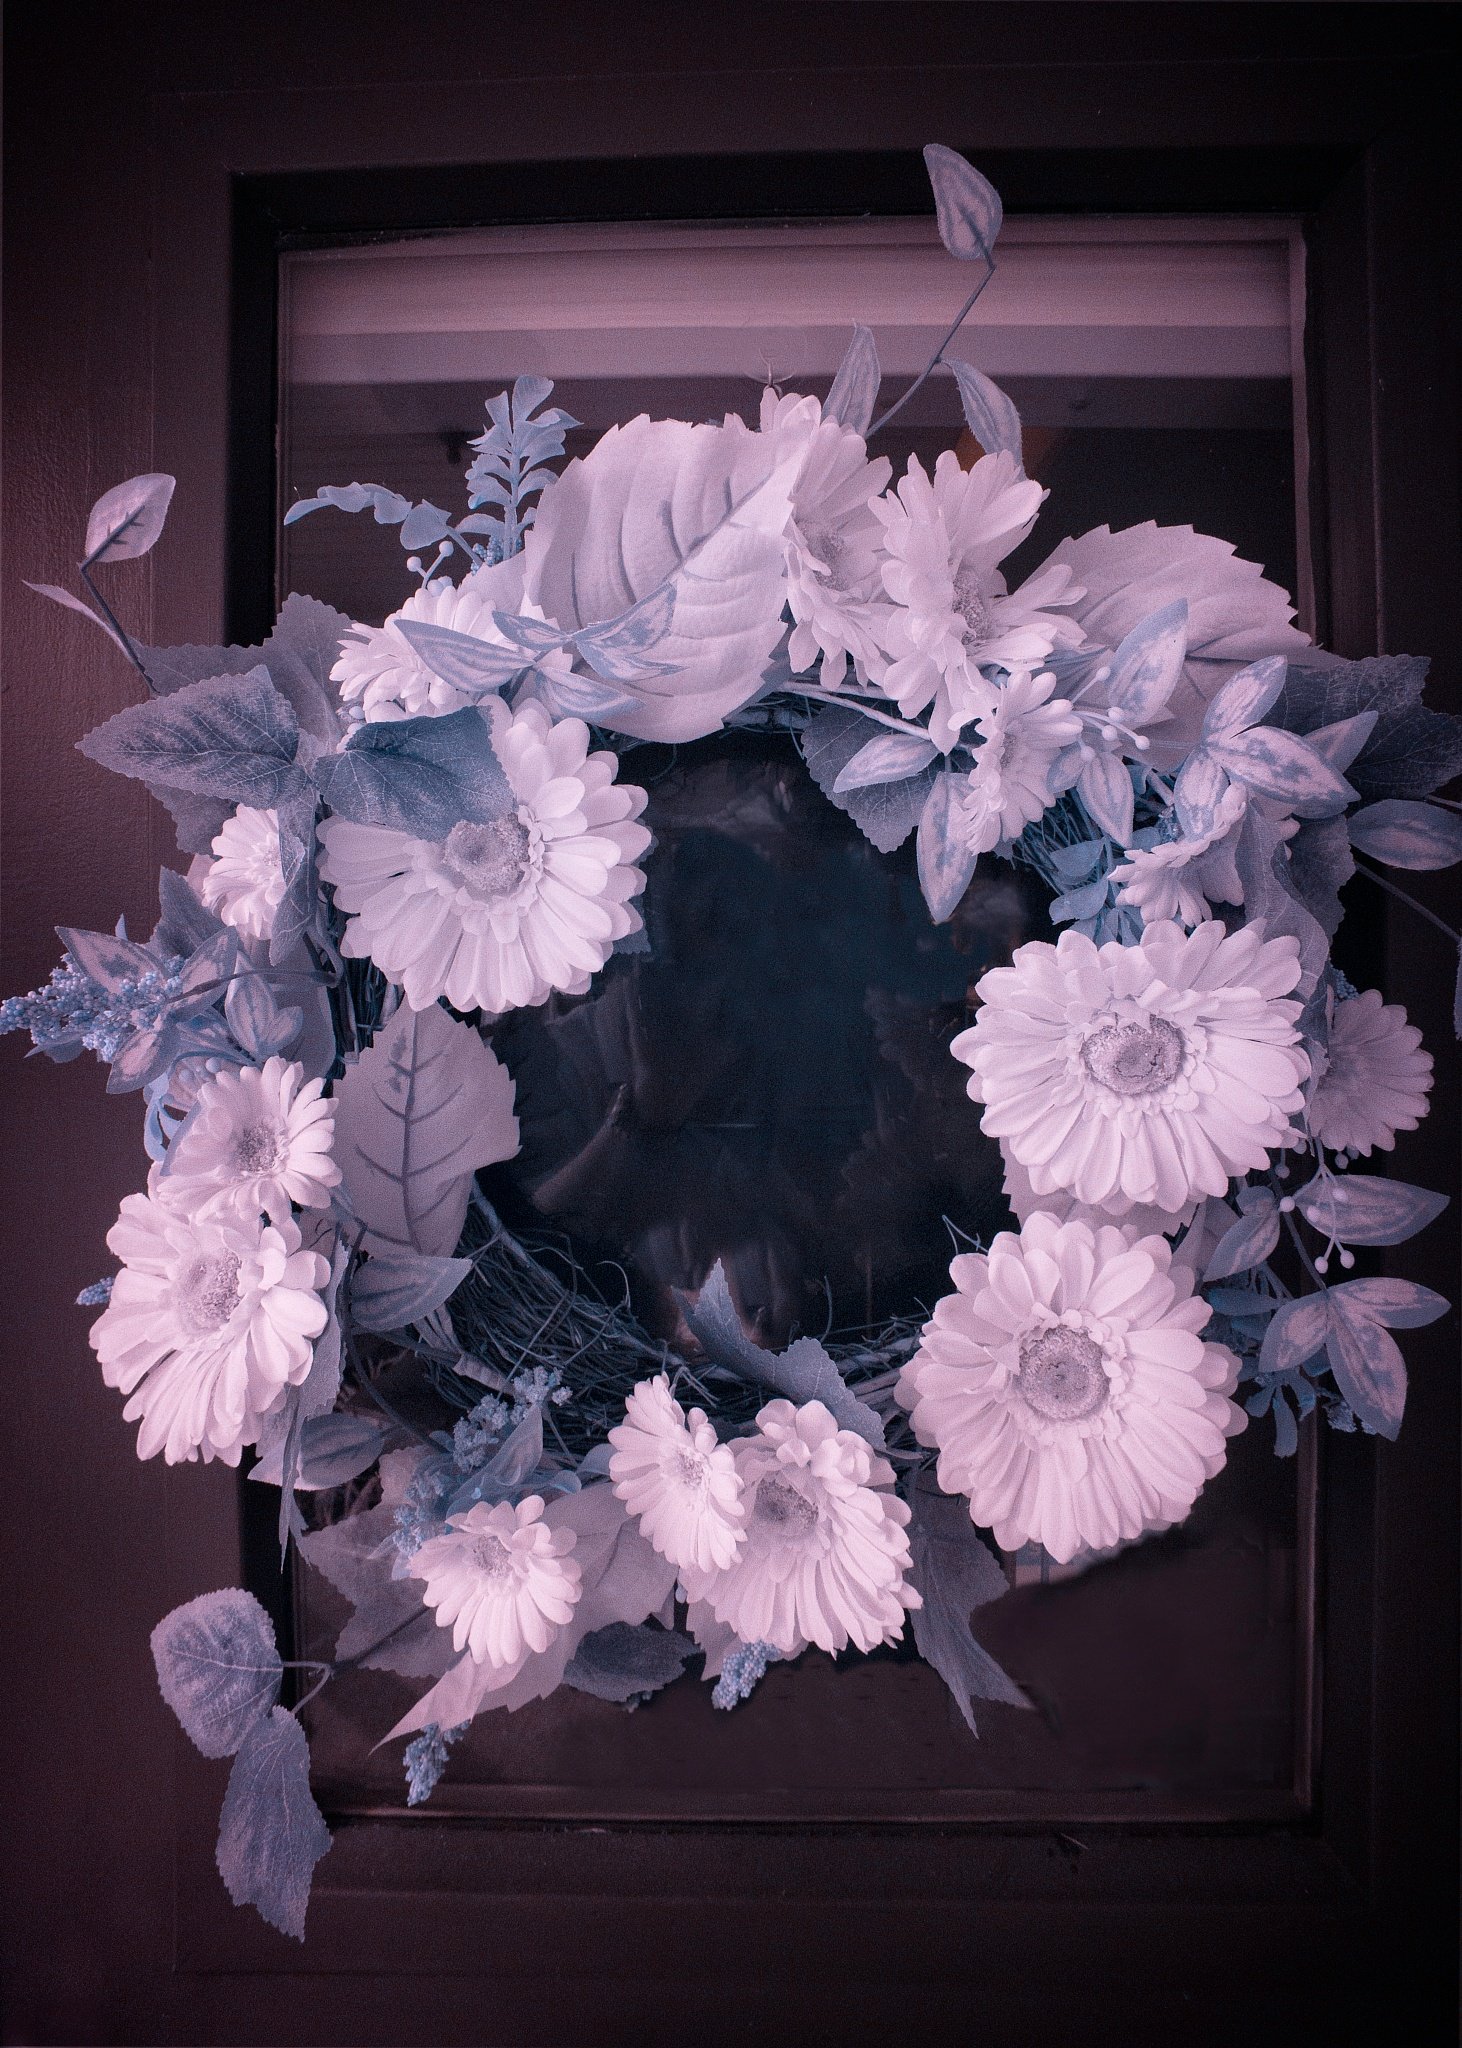 Floral Wreath by Alan Howe